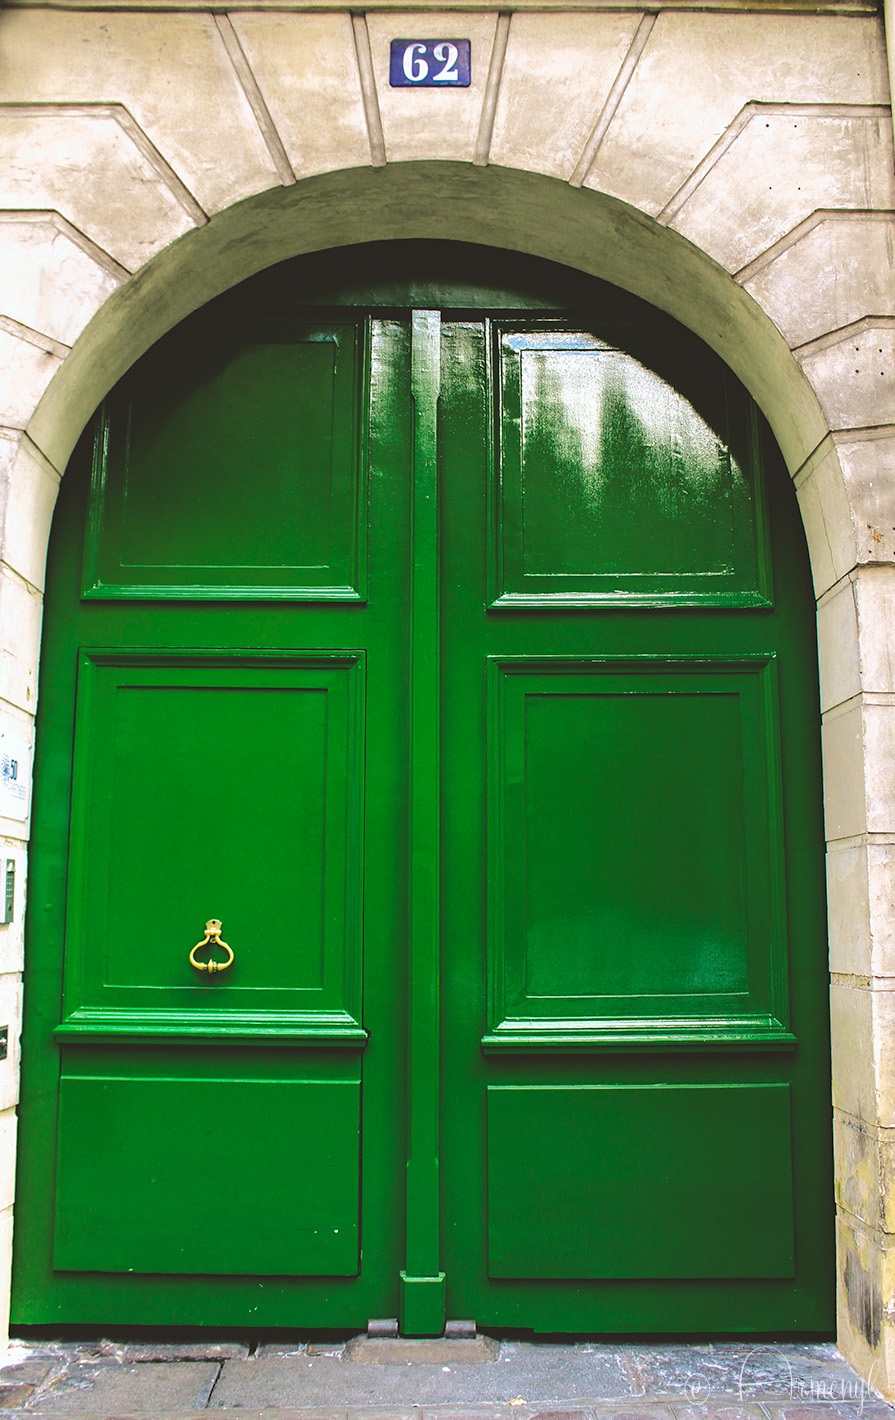 Blessed Doors by Armenyl.com